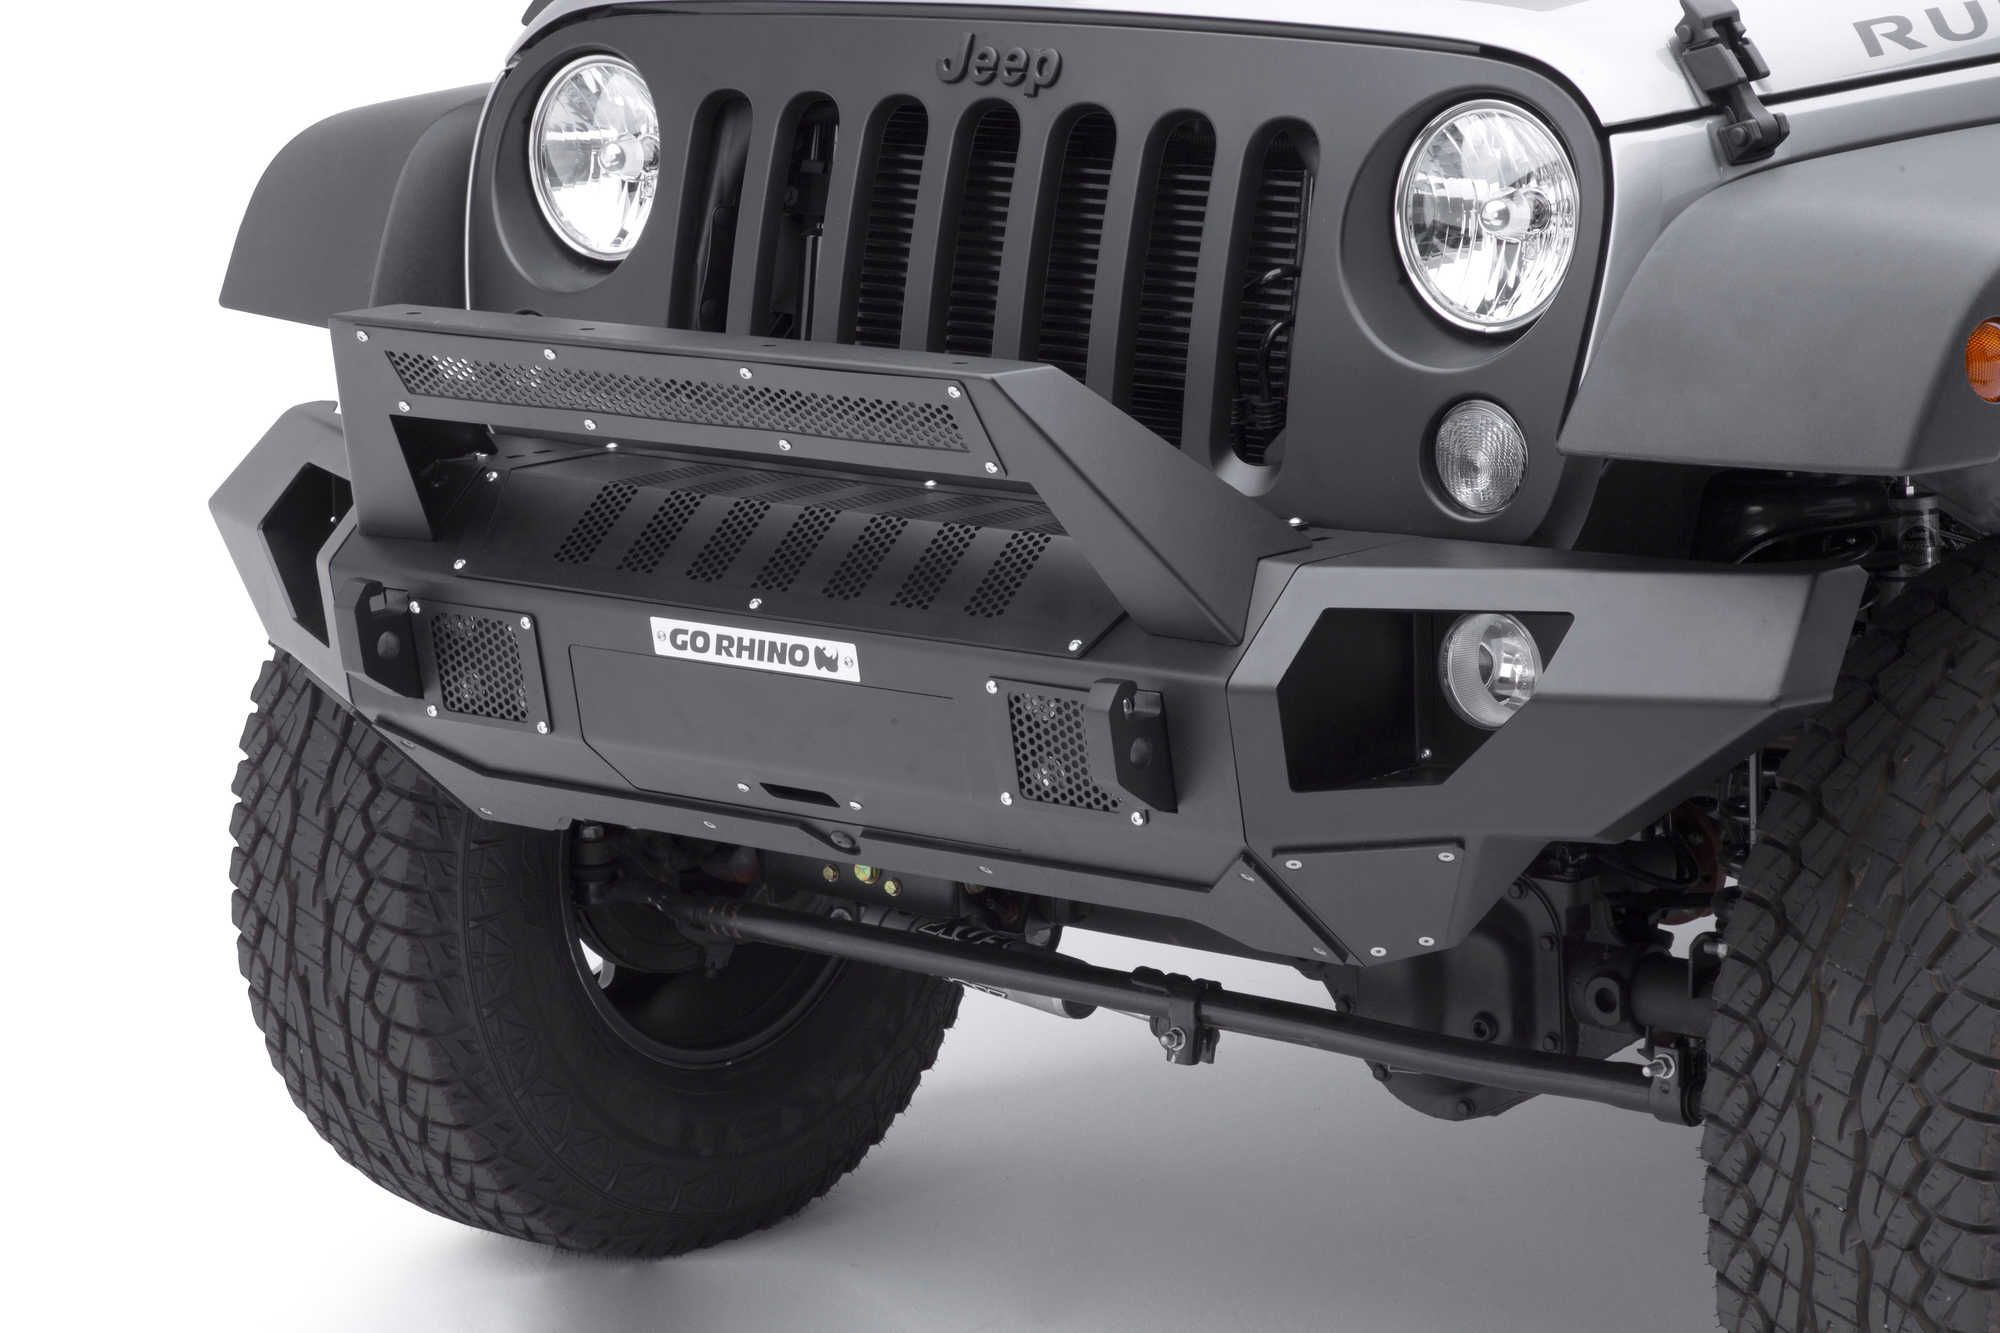 Go Rhino Front Bumper With Straight End Caps And Roadline Light